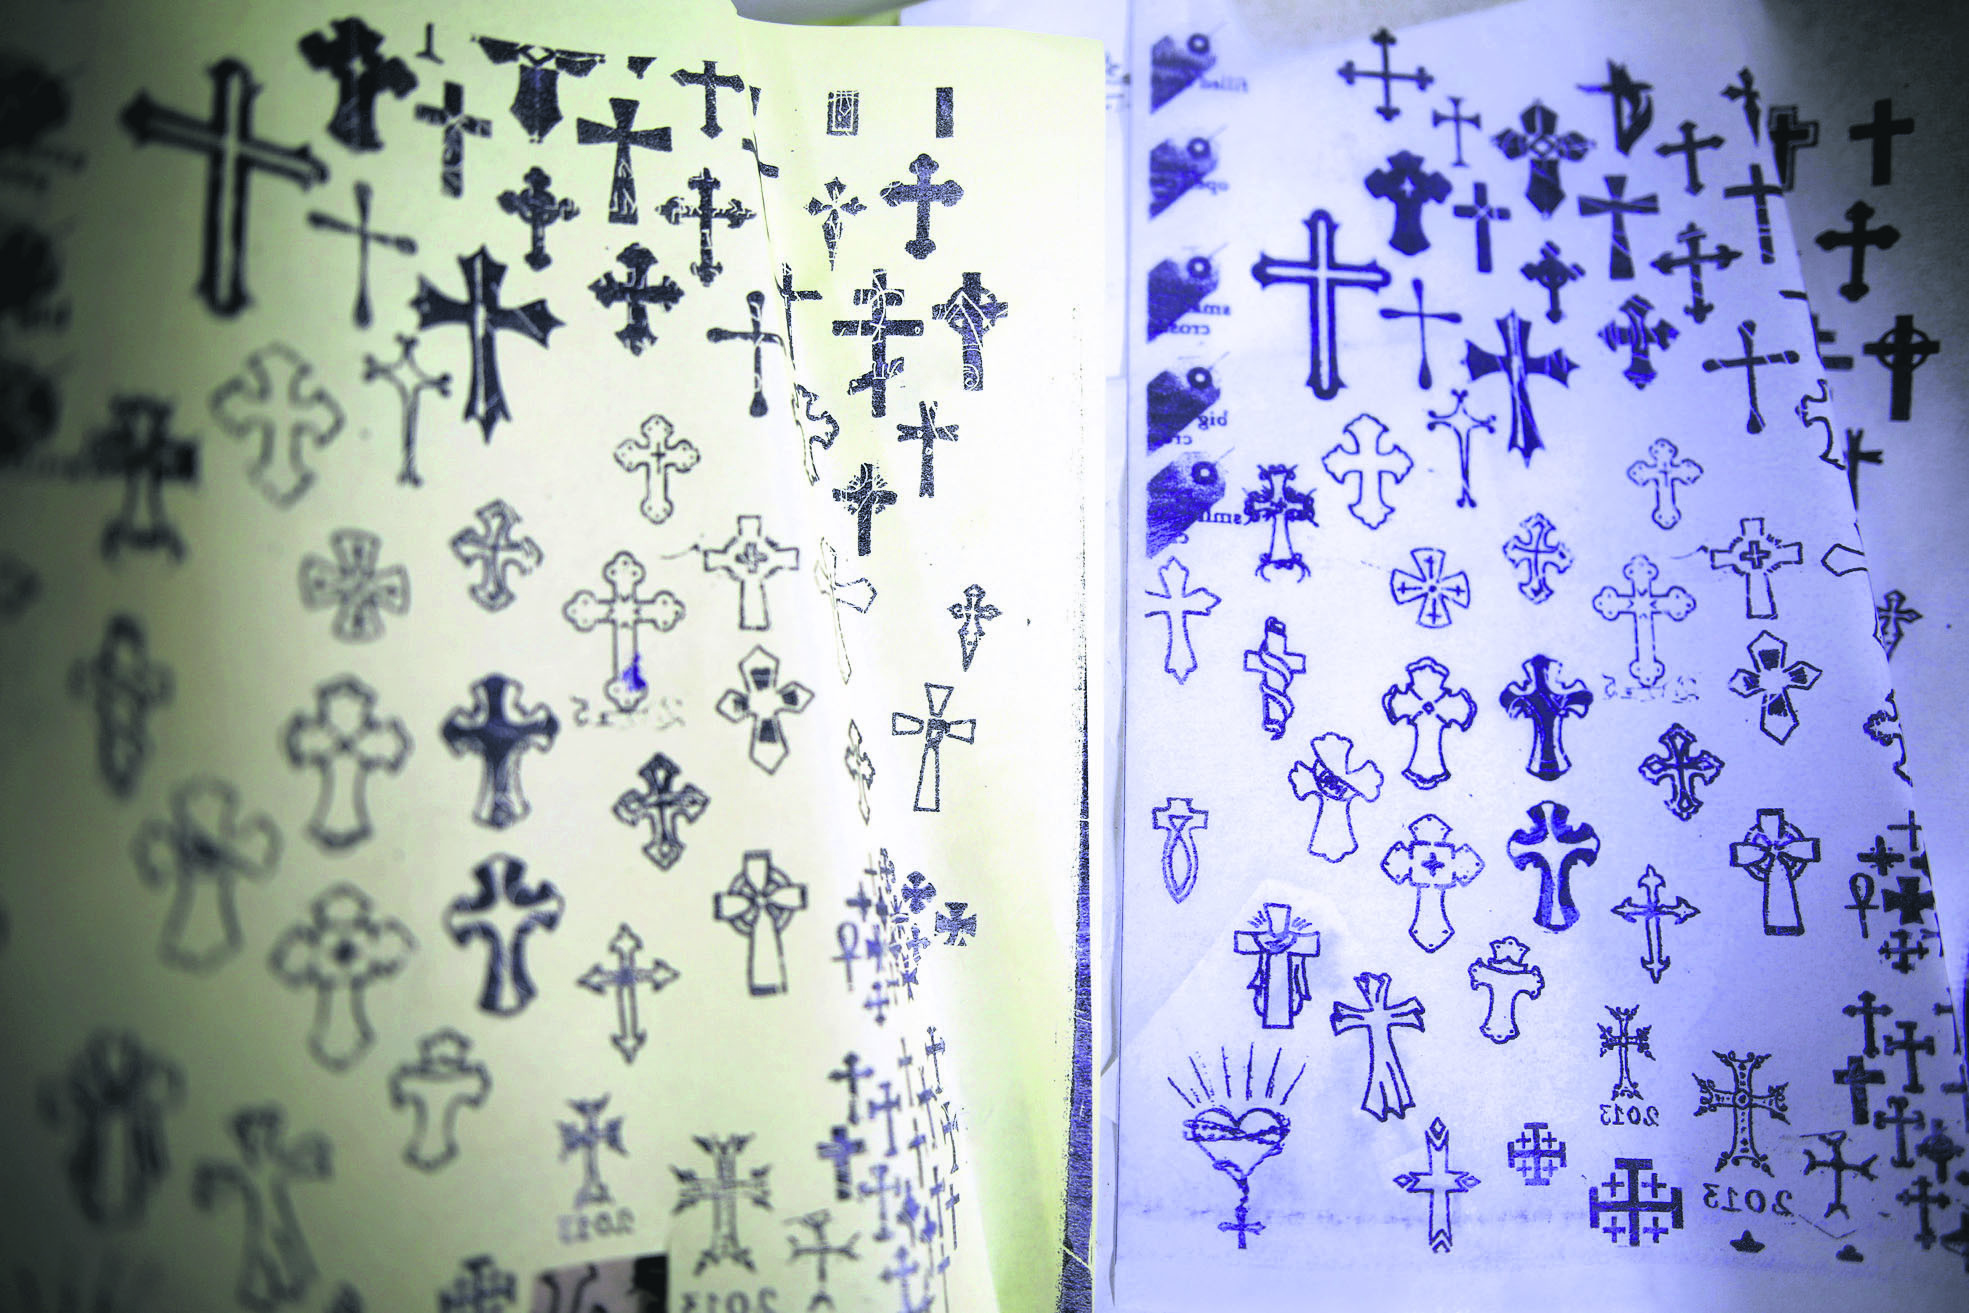 Pages displaying different Christian cross designs at the studio of tattoo artist Wassim Razzouk.